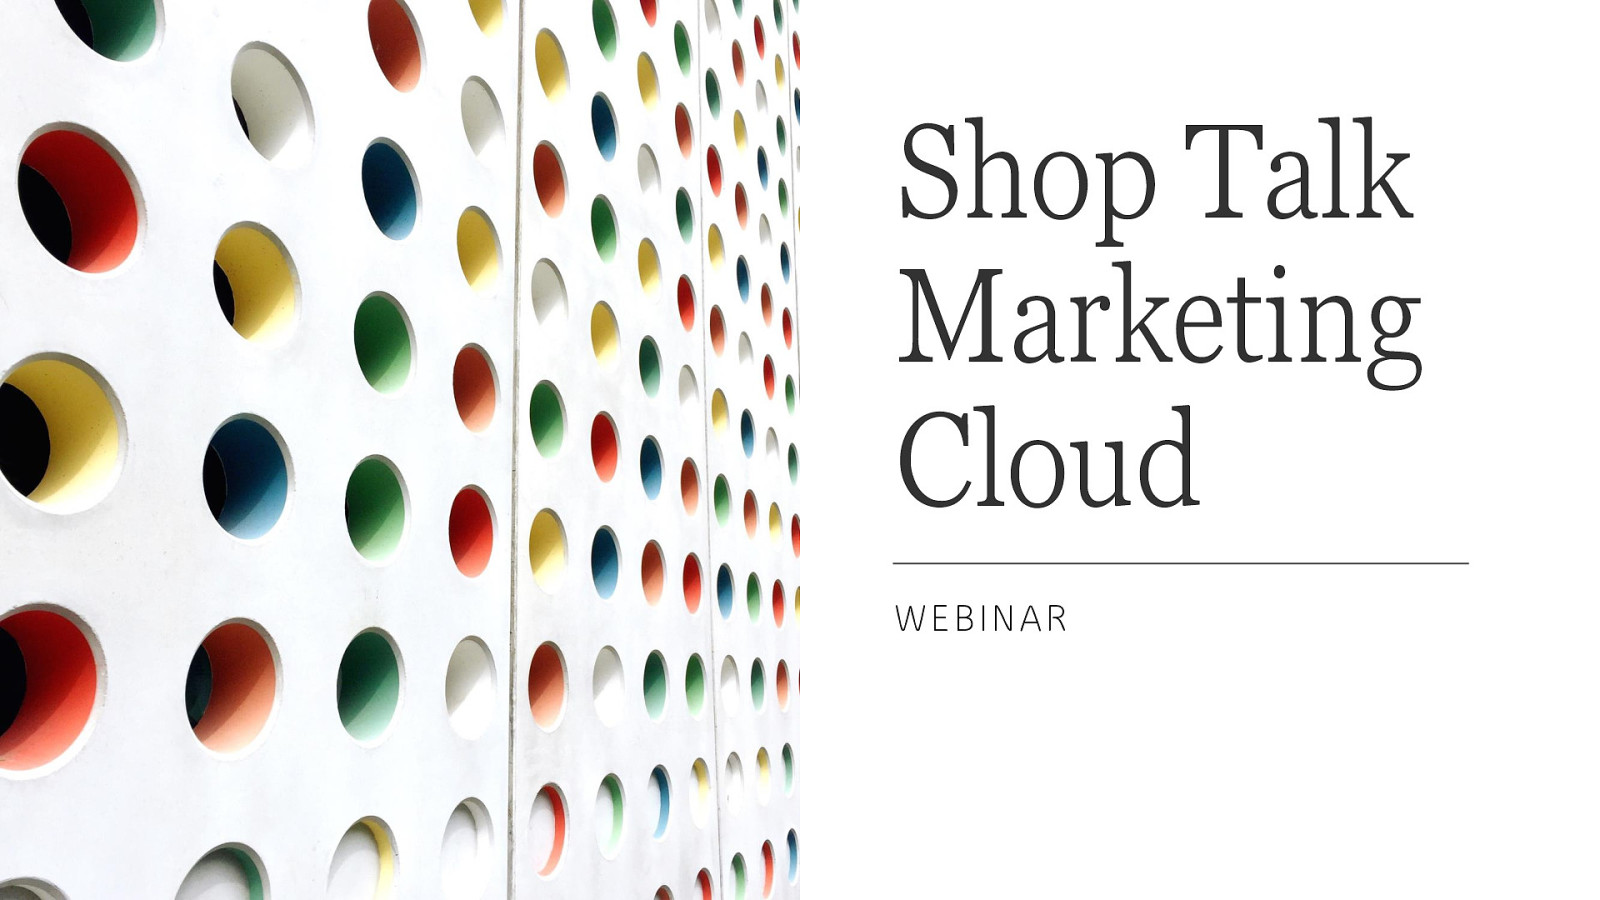 Shop Talk Marketing Cloud Webinar